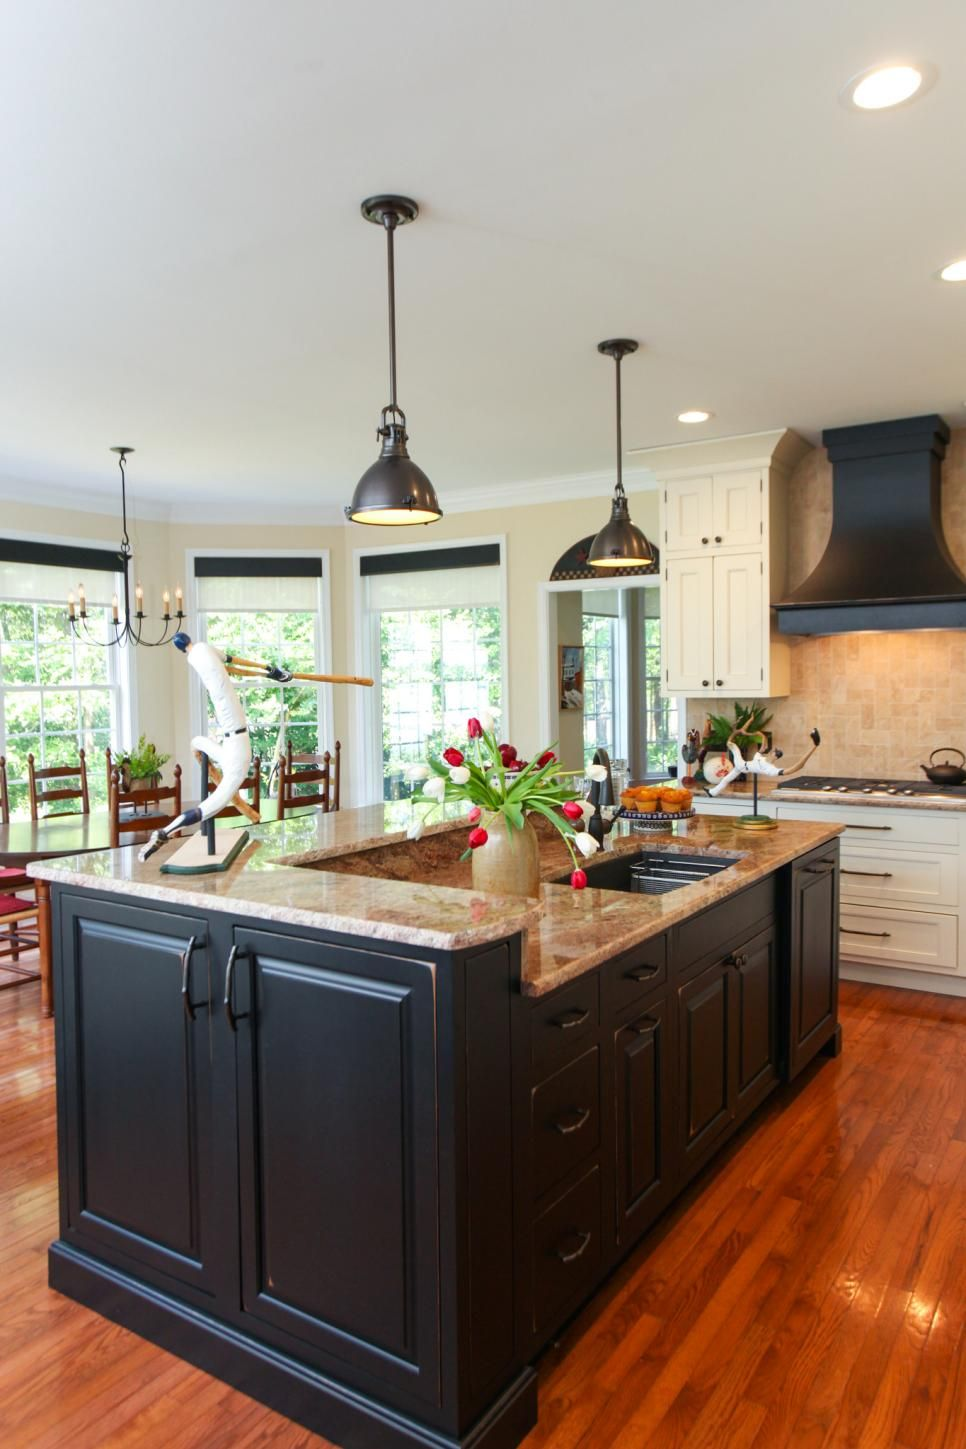 This Large Center Island Features Black Cabinetry And Neutral Granite Countertops Not Only Does It Provide Extra Prep E But With Two Counter Heights